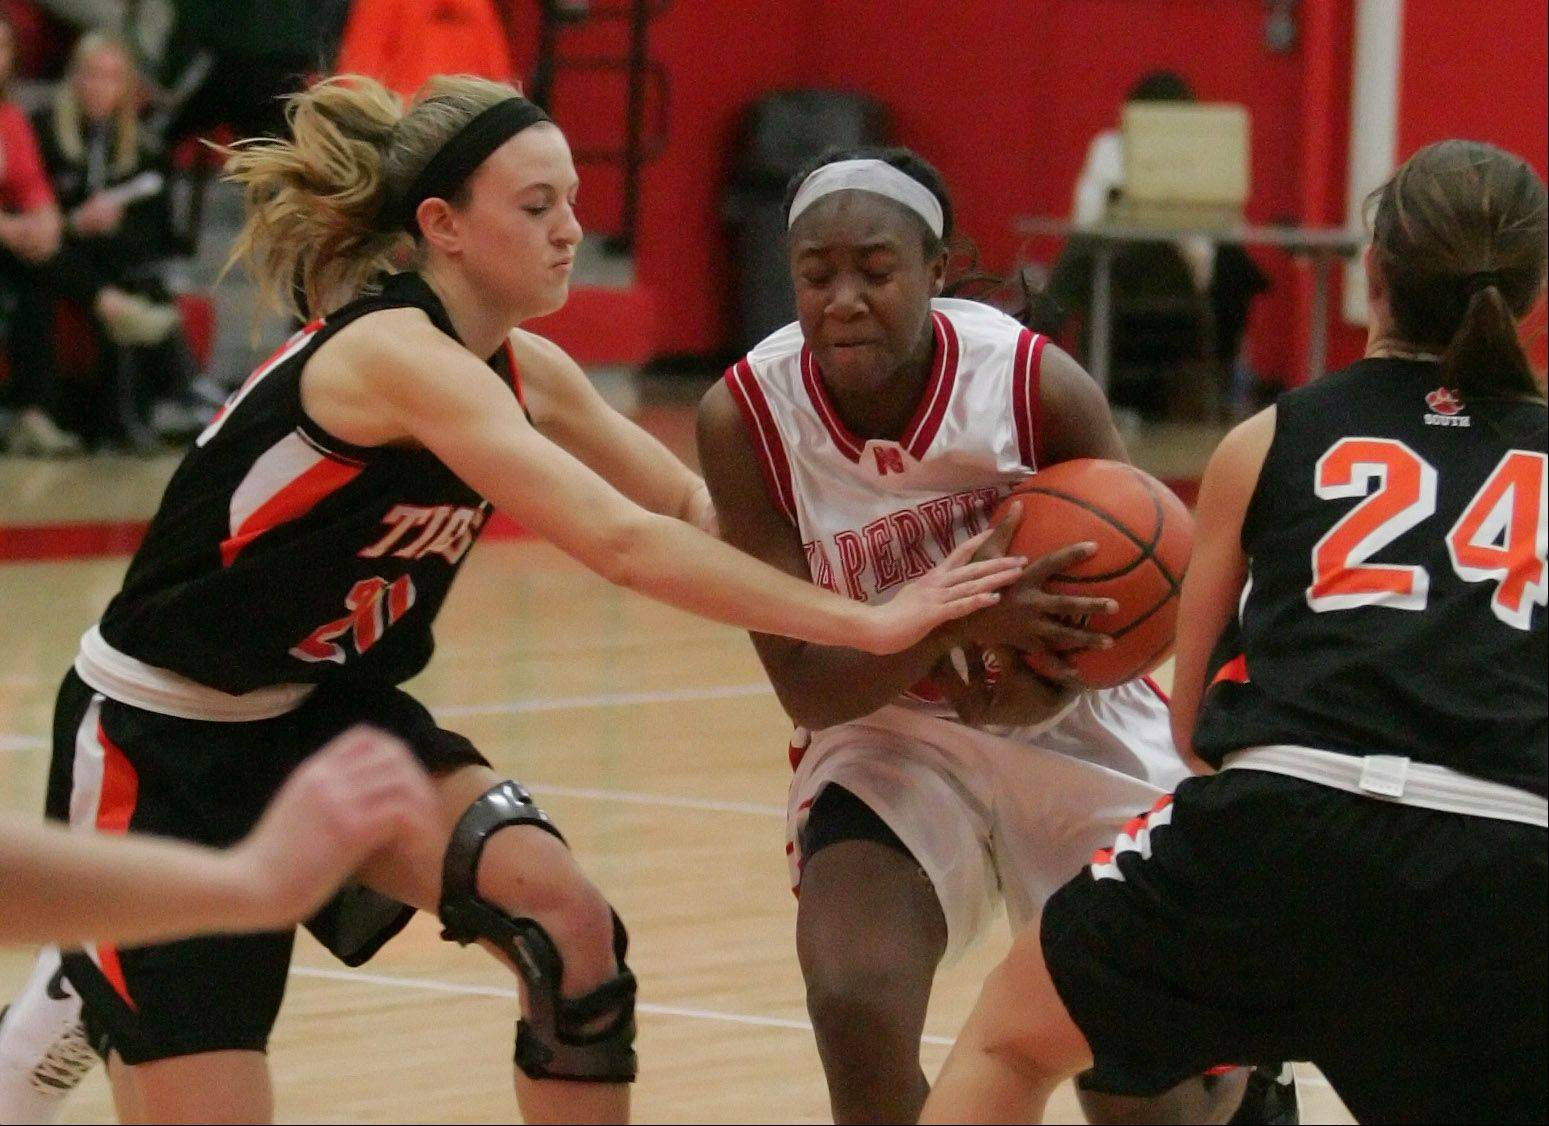 Cierra Stanciel of Naperville Central, right, tries to keep possession of the ball as Kelly Langlas of Wheaton Warrenville South defends in girls basketball action on Tuesday in Naperville.